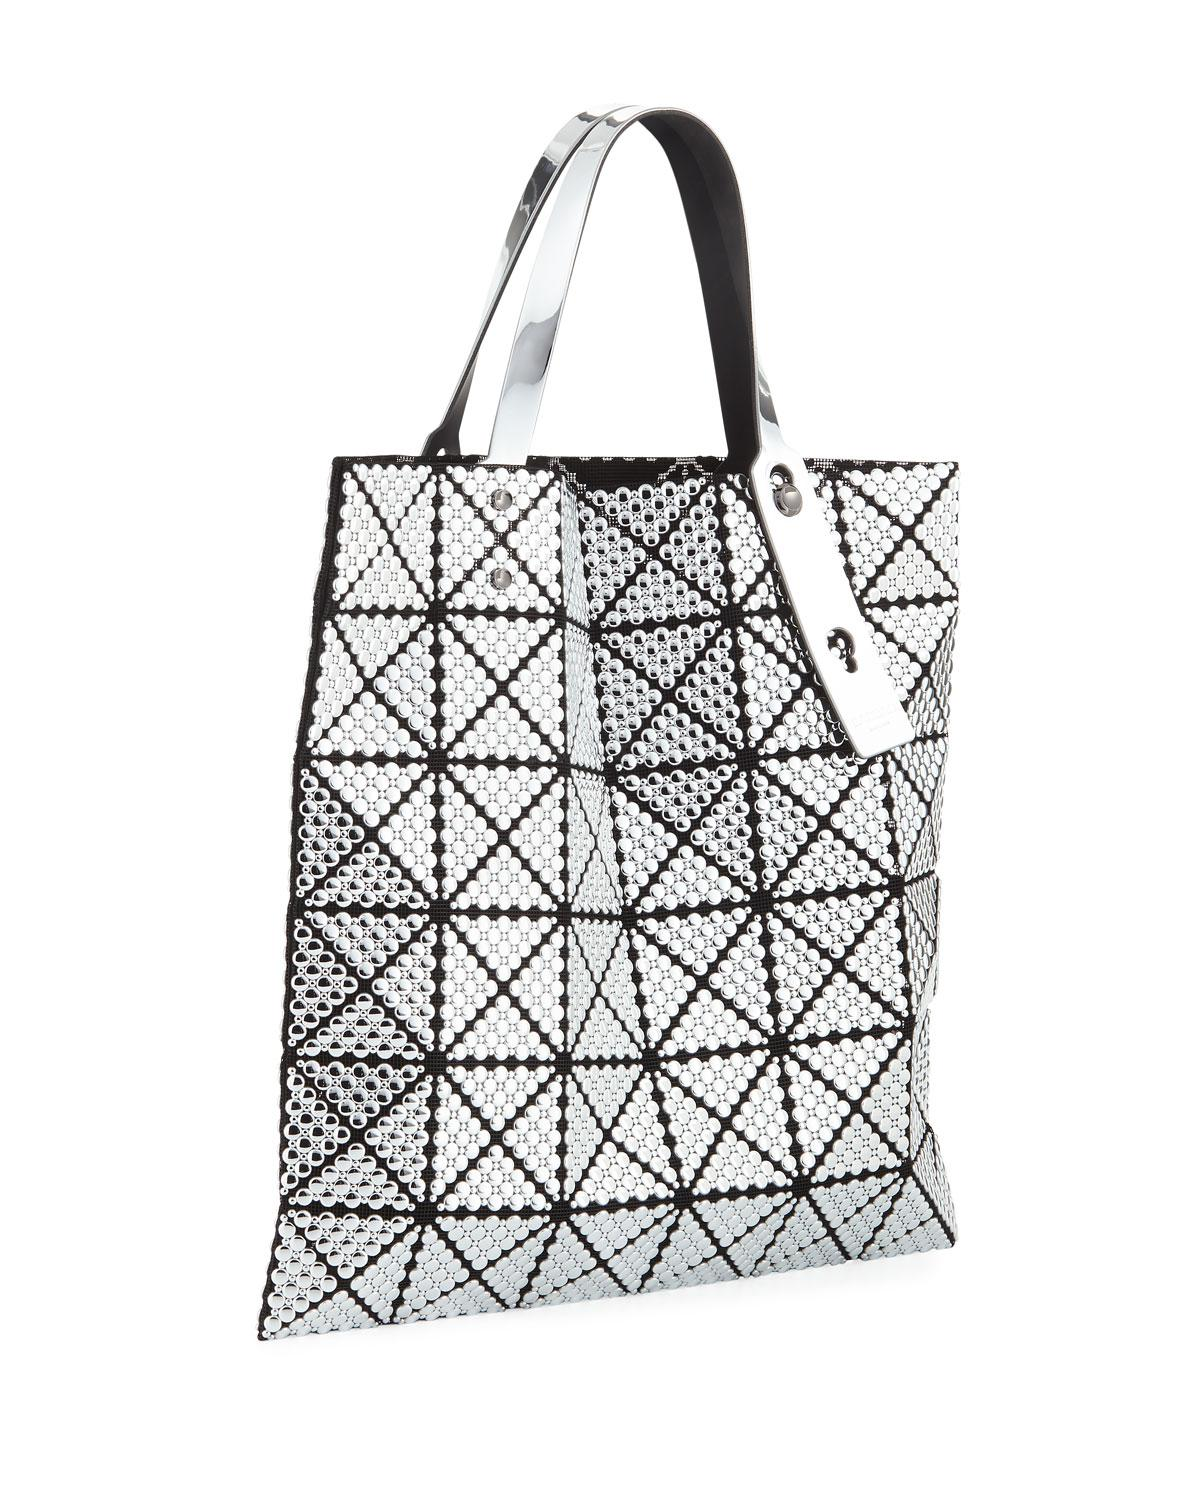 Lyst - Bao Bao Issey Miyake Bubble Studded Tote Bag in Metallic 38402d8f0f688